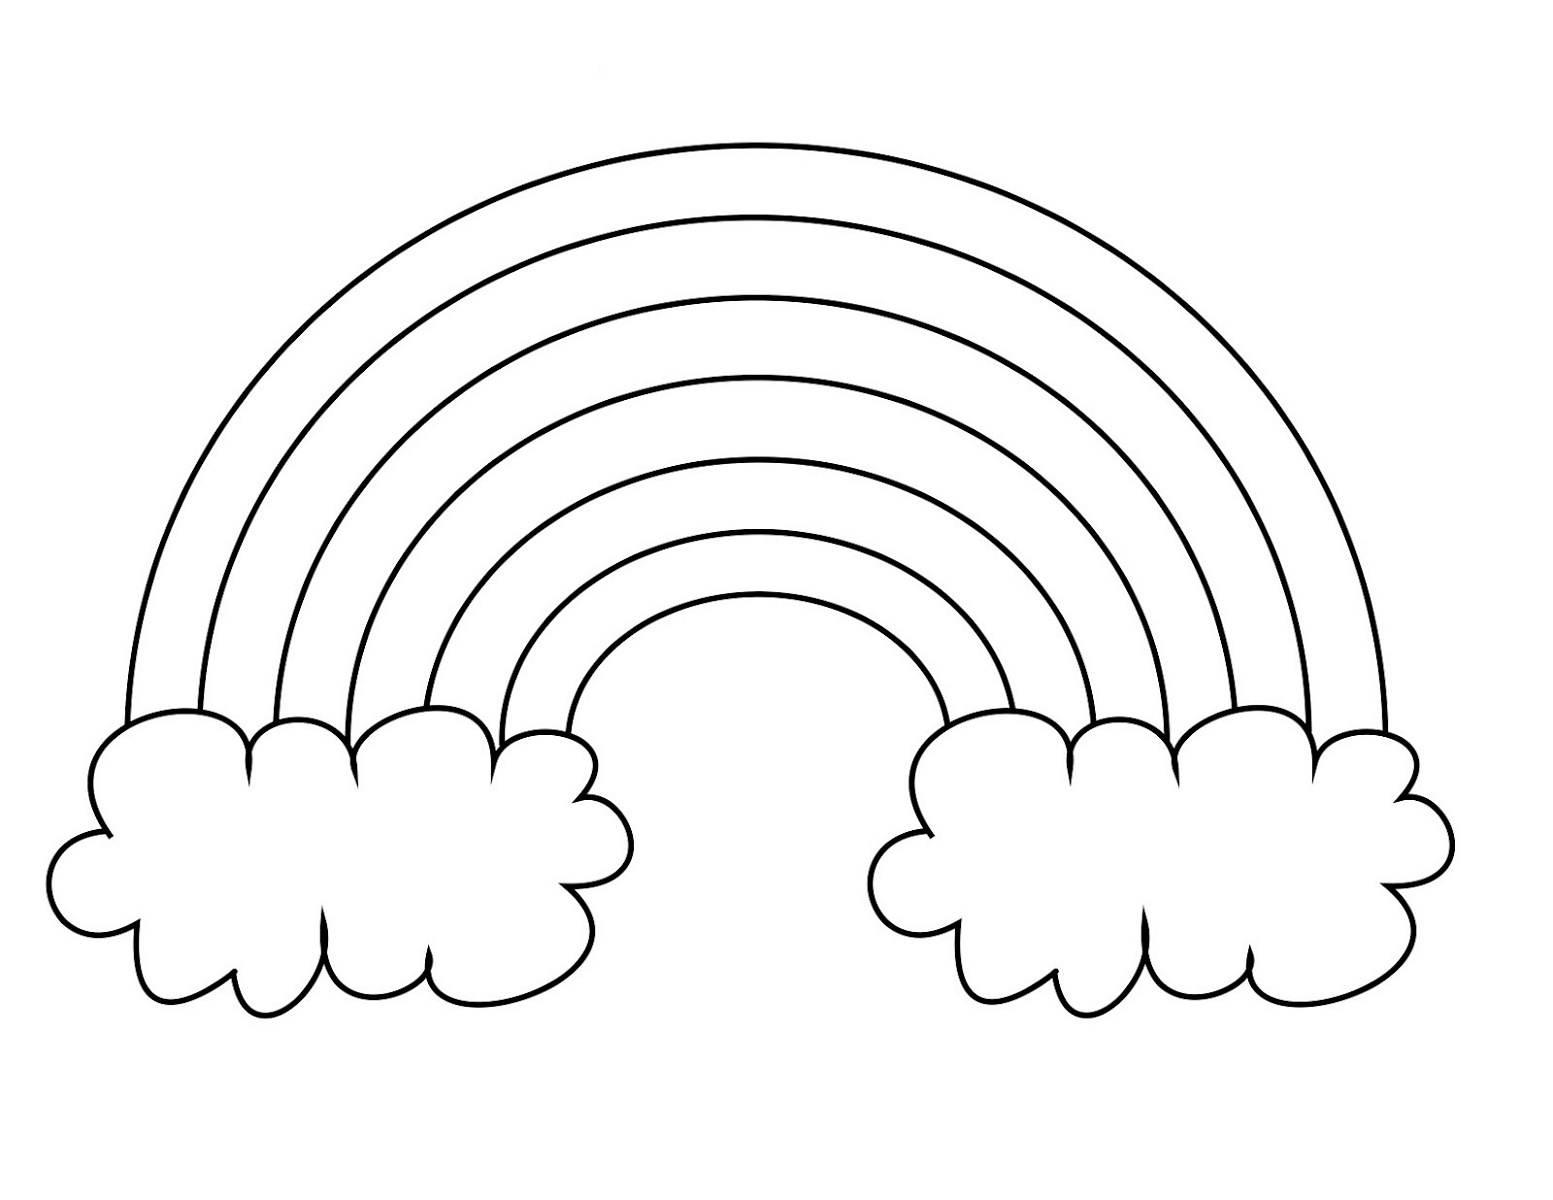 Rainbow Coloring Page For Preschool